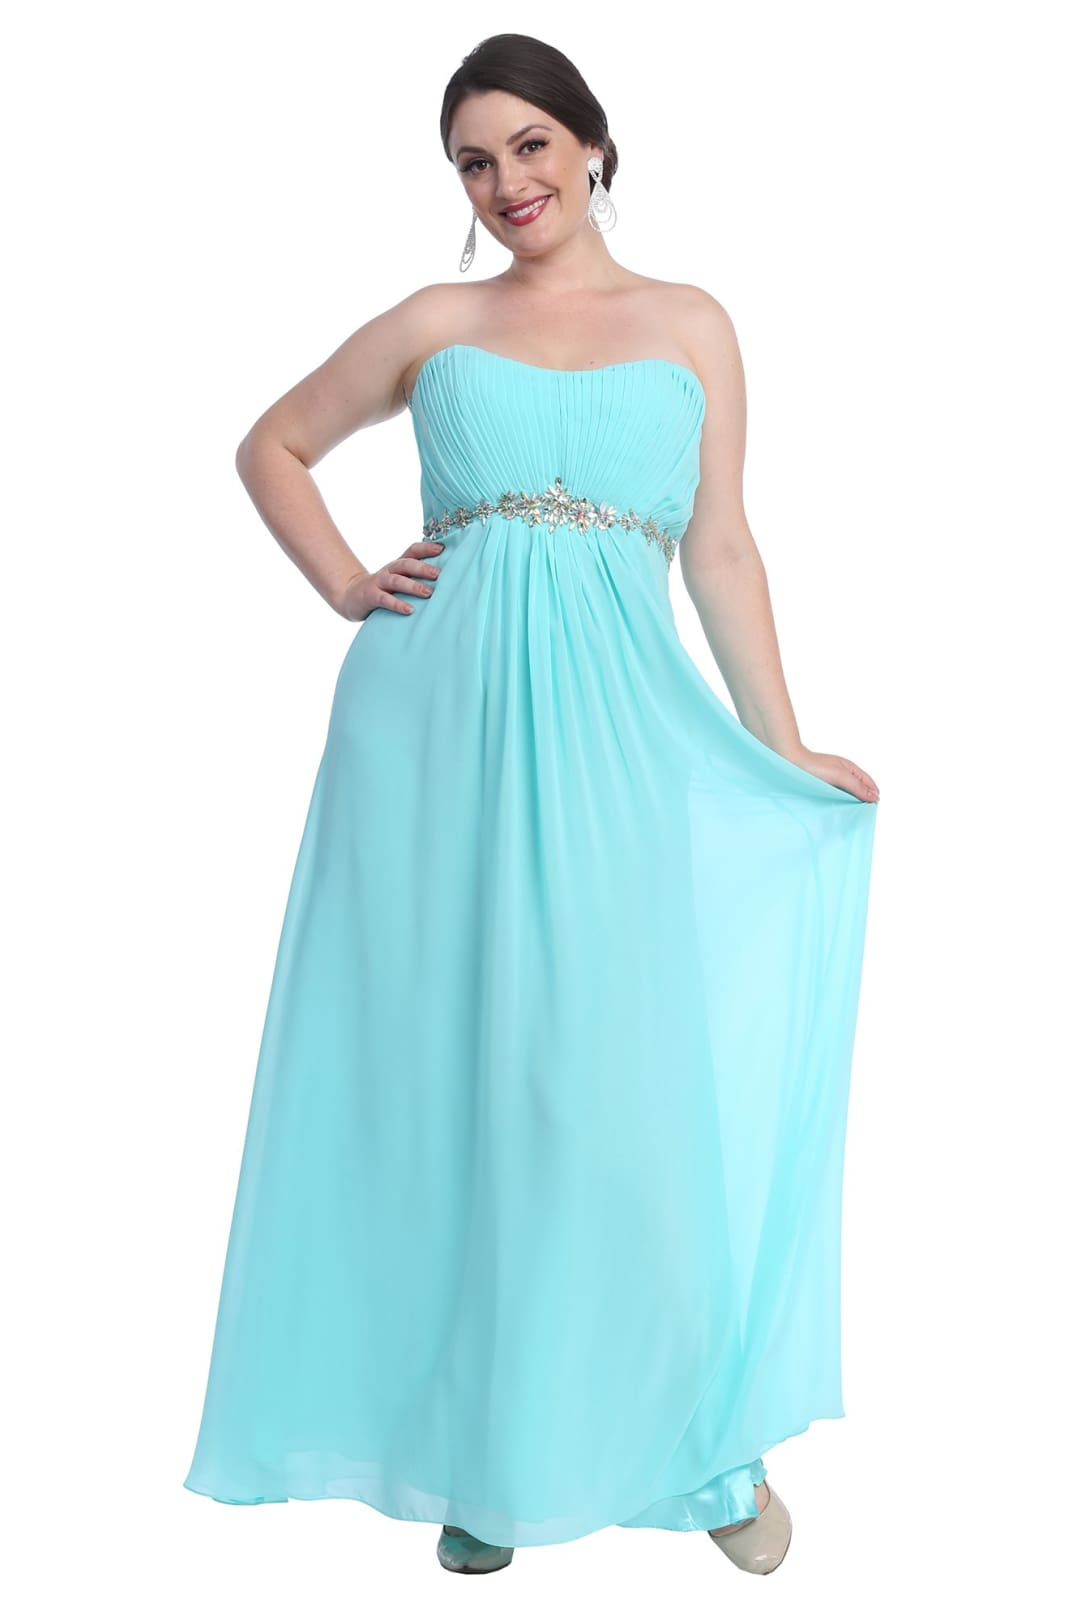 Strapless Evening Gown - Aqua / 4